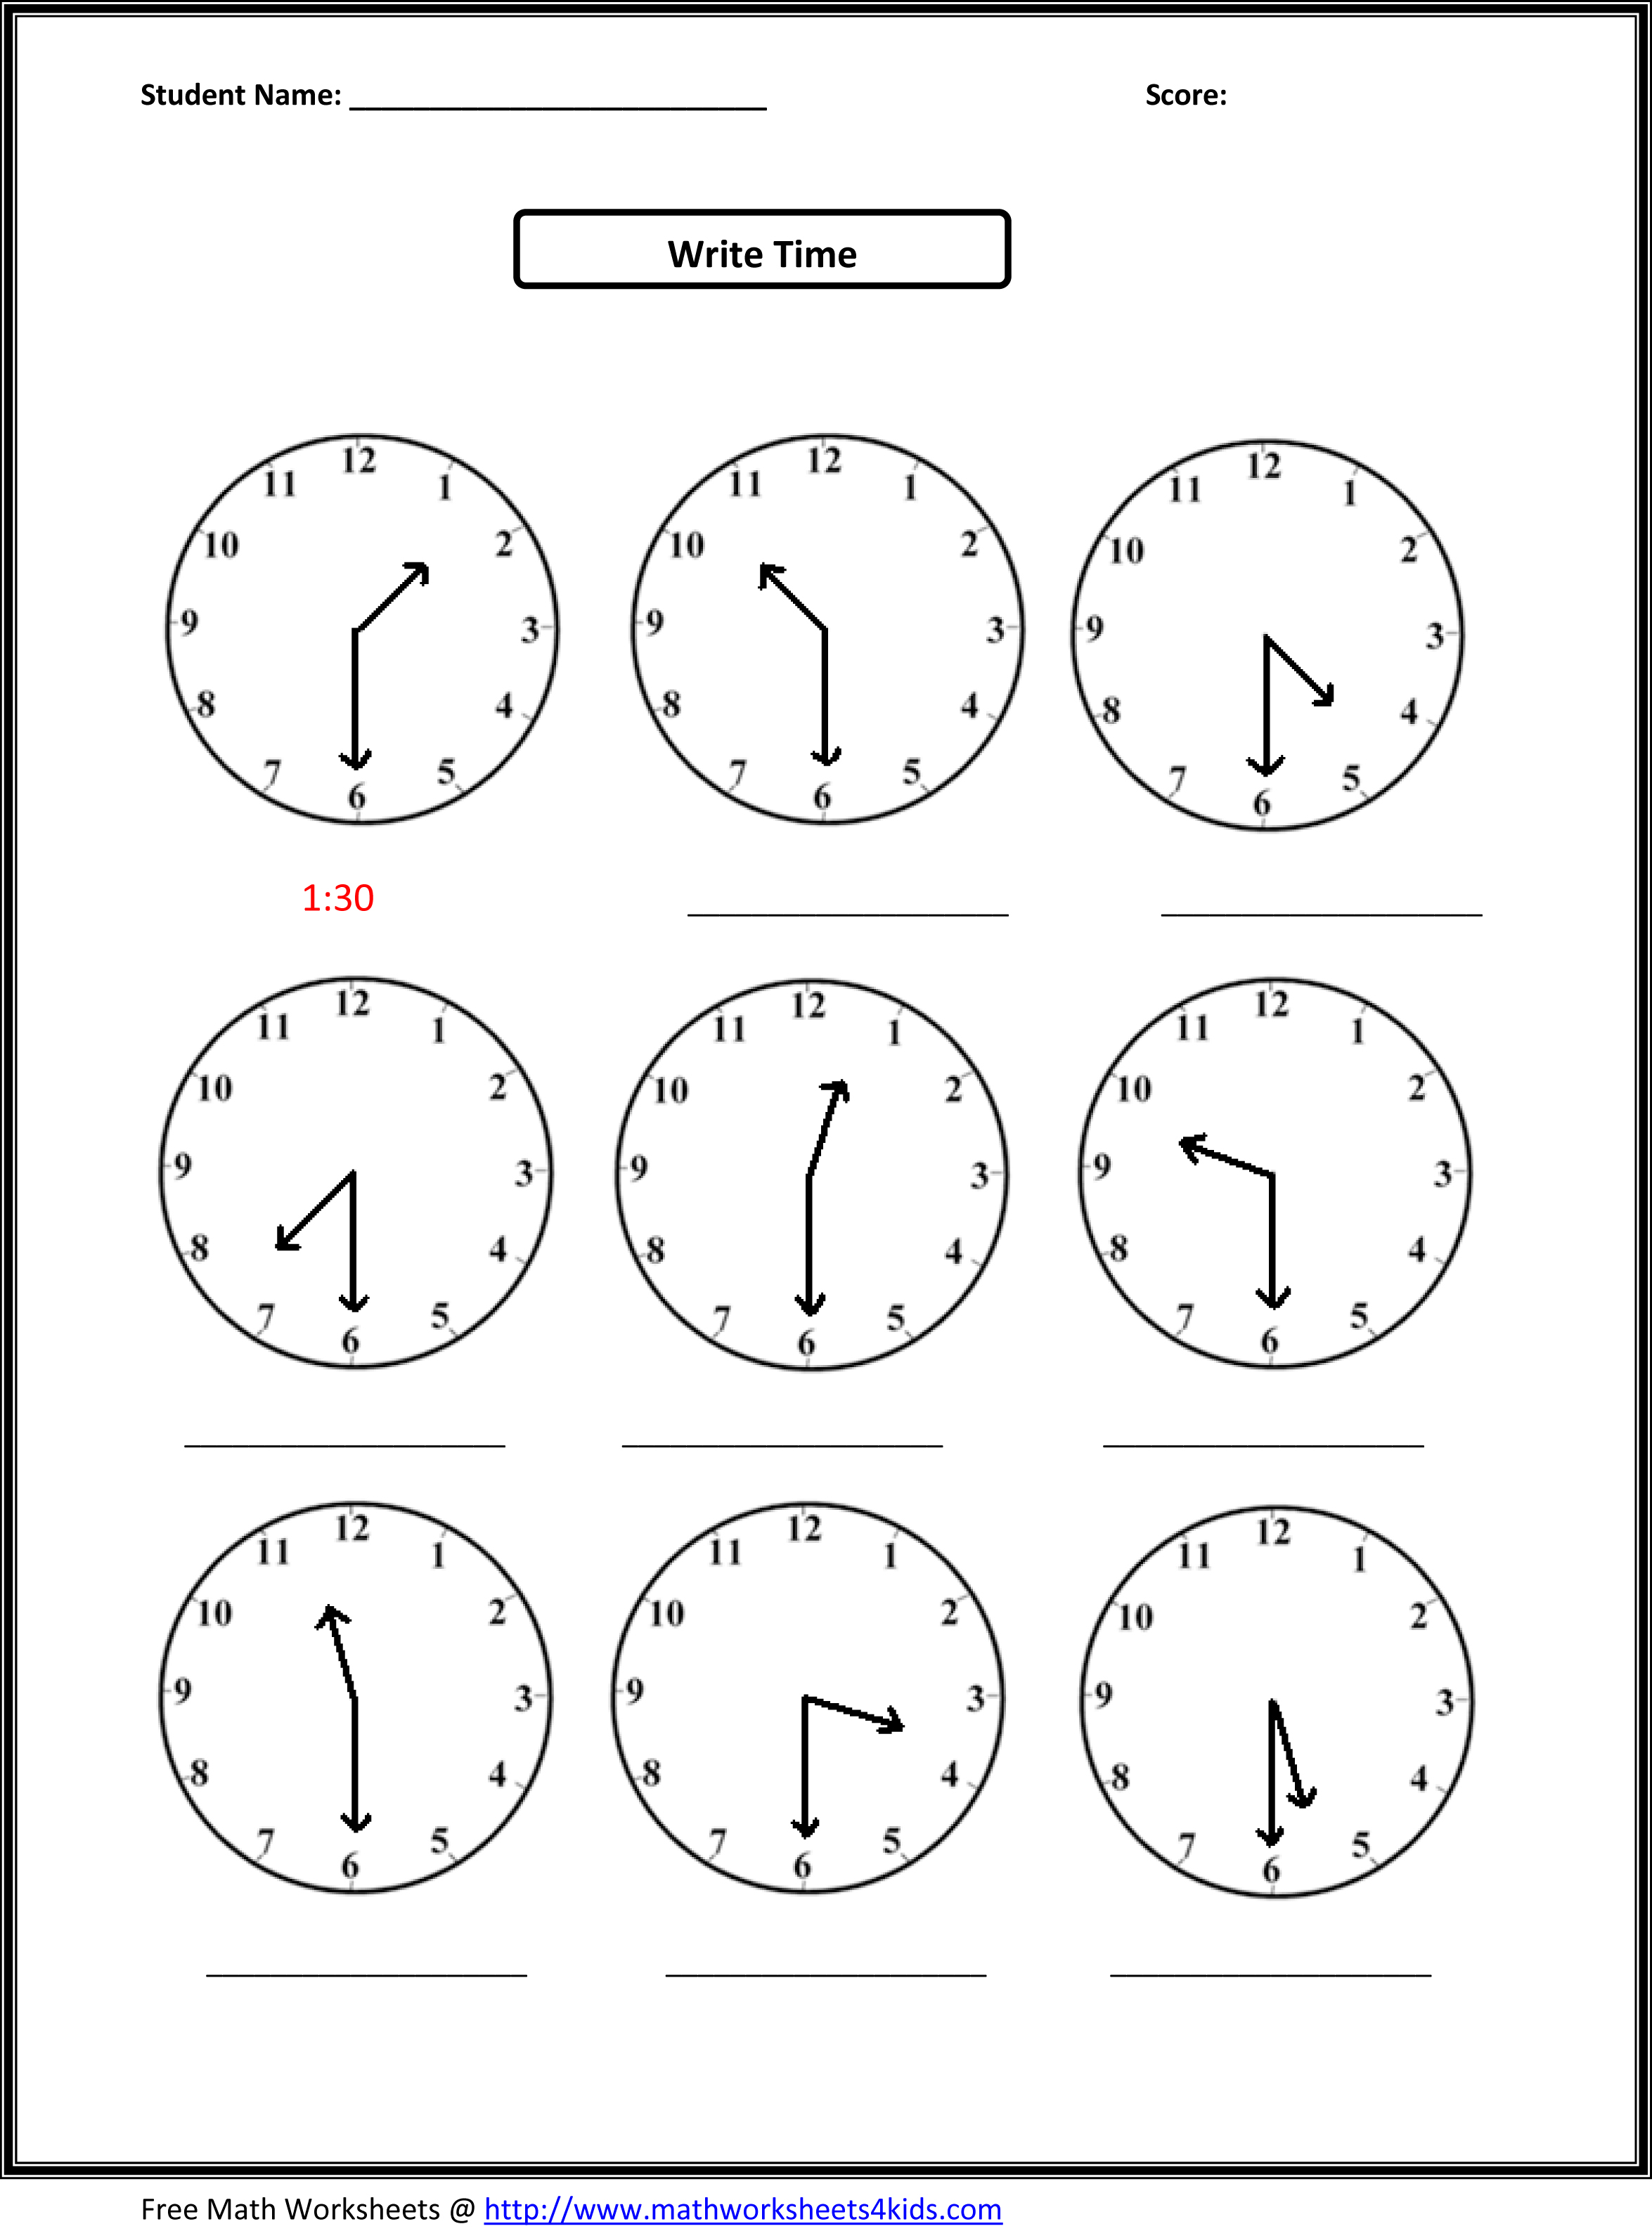 12 Best Images Of Saxon Math 5th Grade Printable